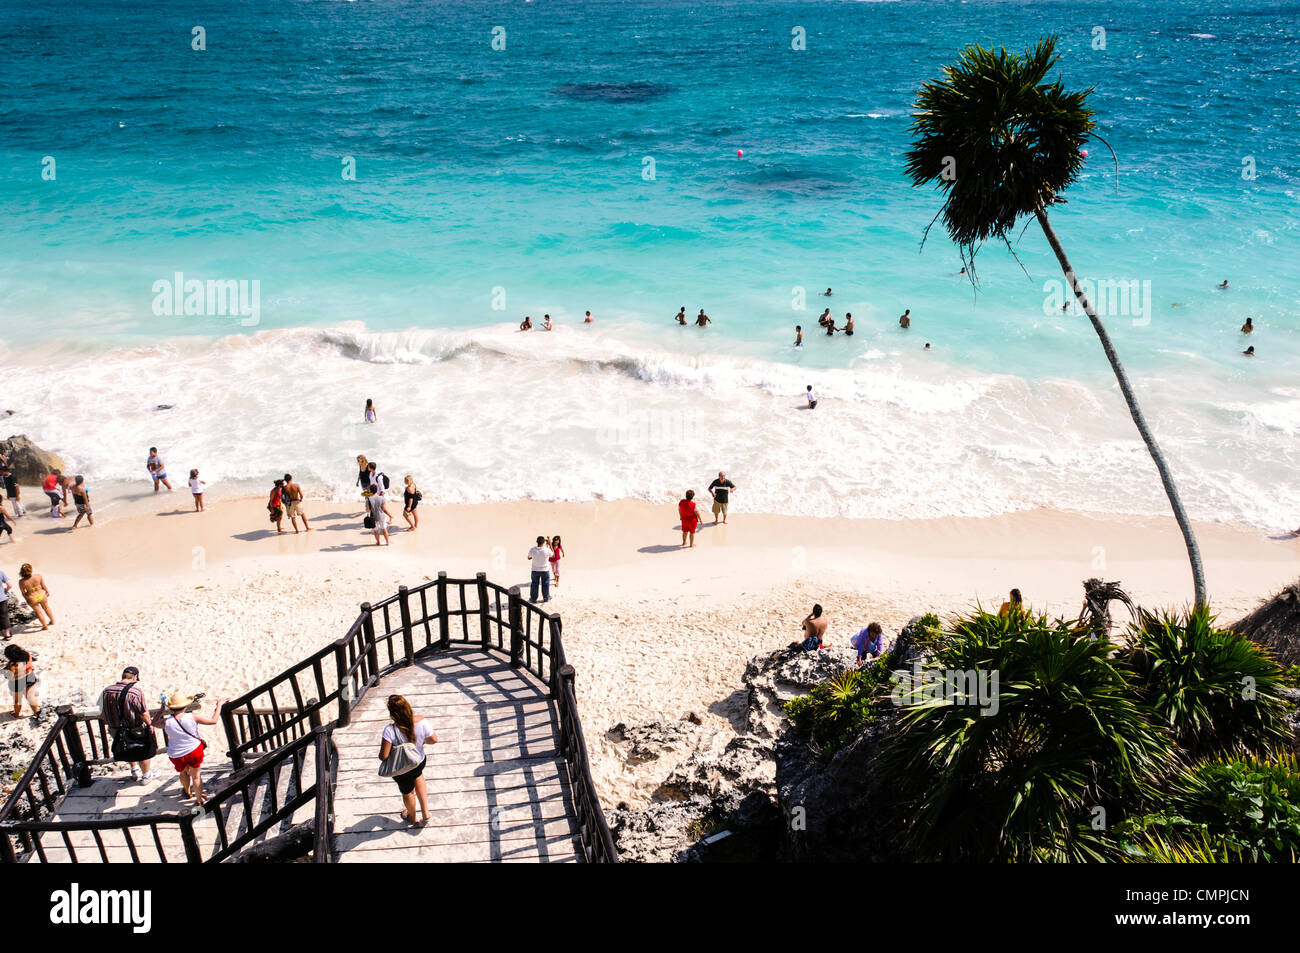 TULUM, Mexico - People swimming in the small surf of the Caribbean Sea from one of the beautiful white, sandy beaches - Stock Image